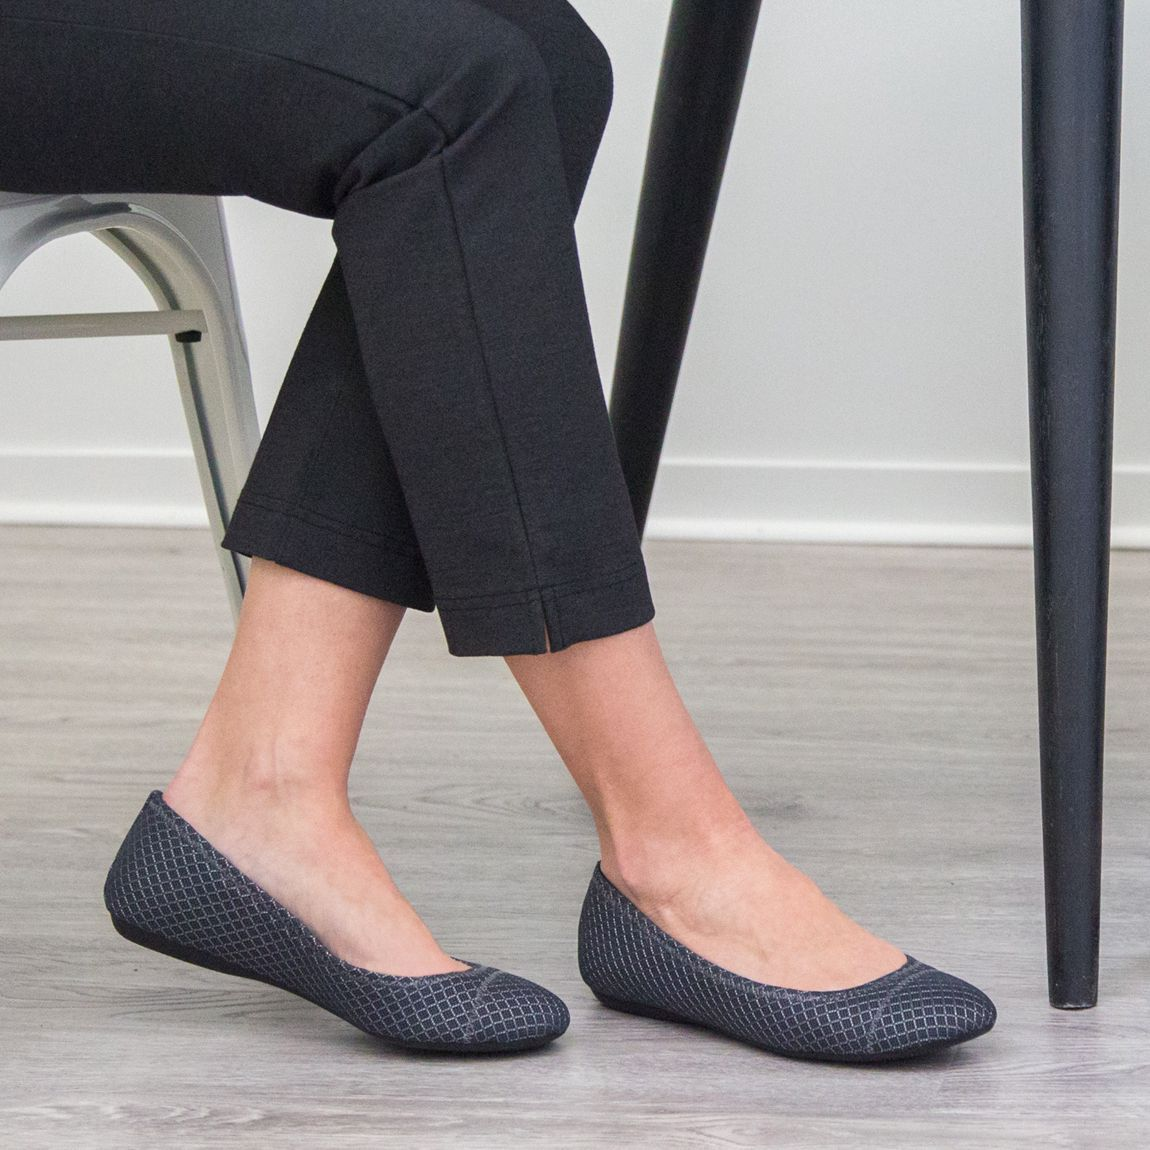 Athletic-Inspired Ballet Flats